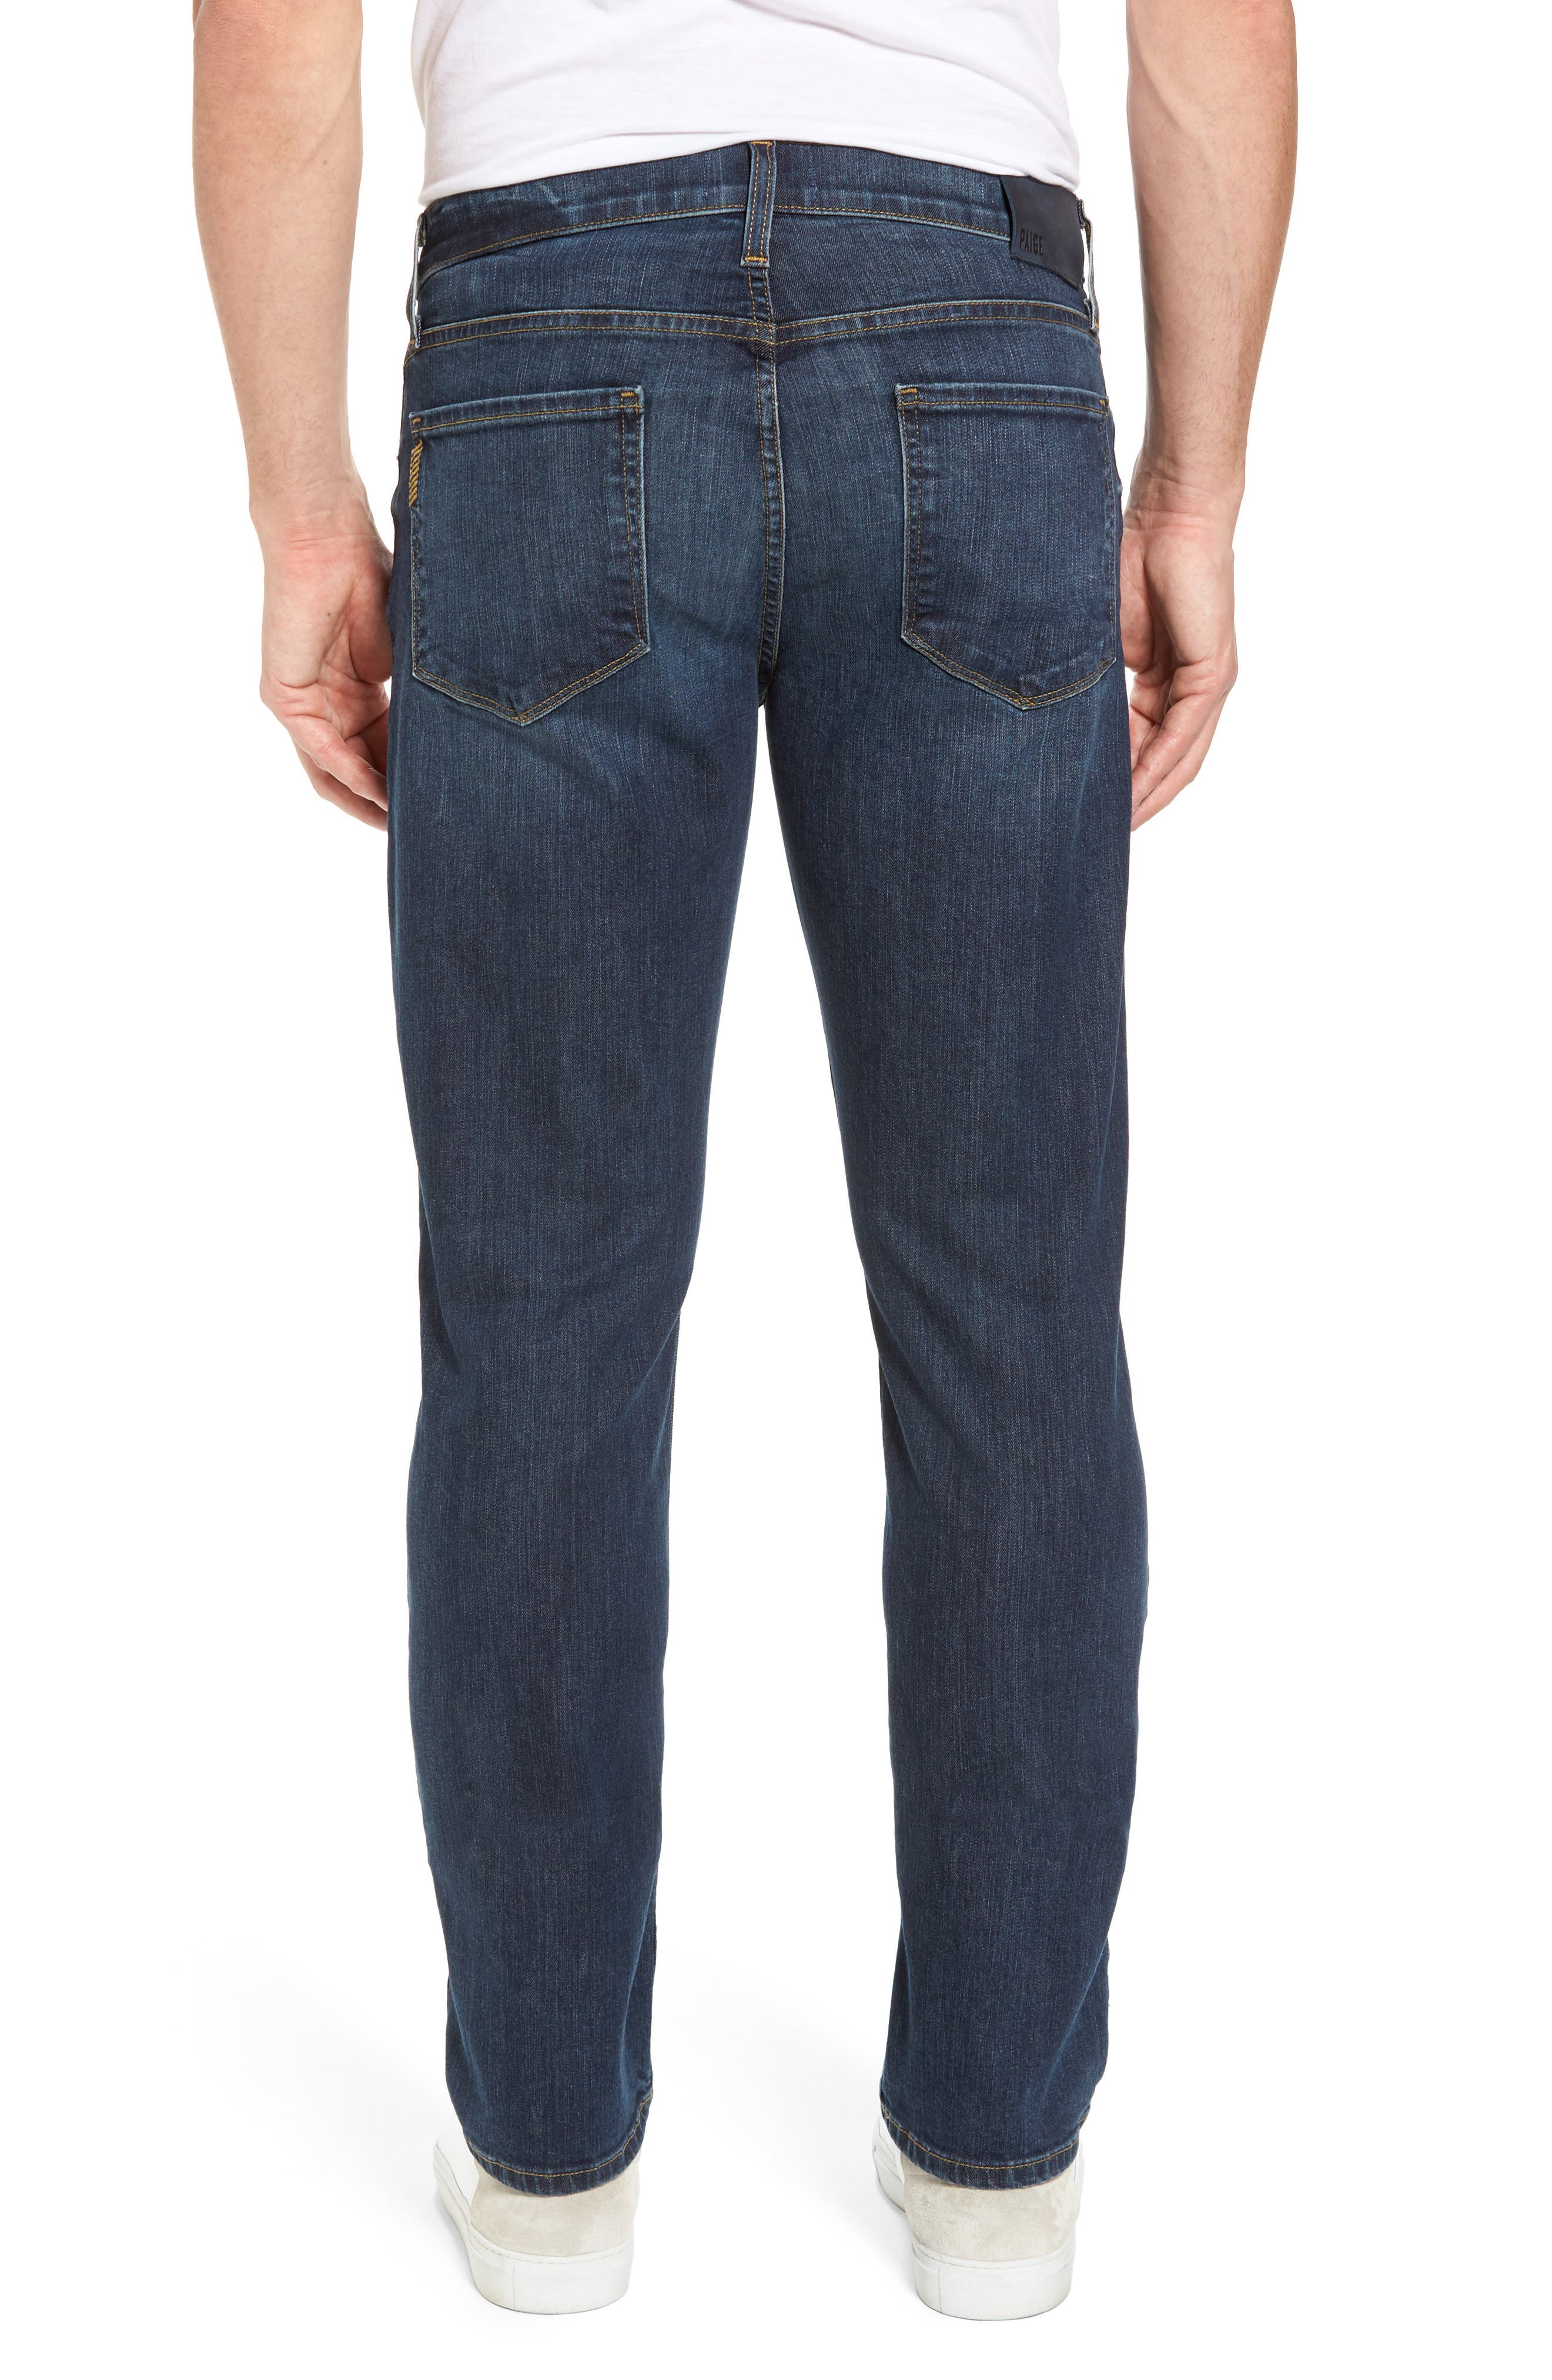 Legacy - Normandie Straight Fit Jeans,                             Alternate thumbnail 2, color,                             400